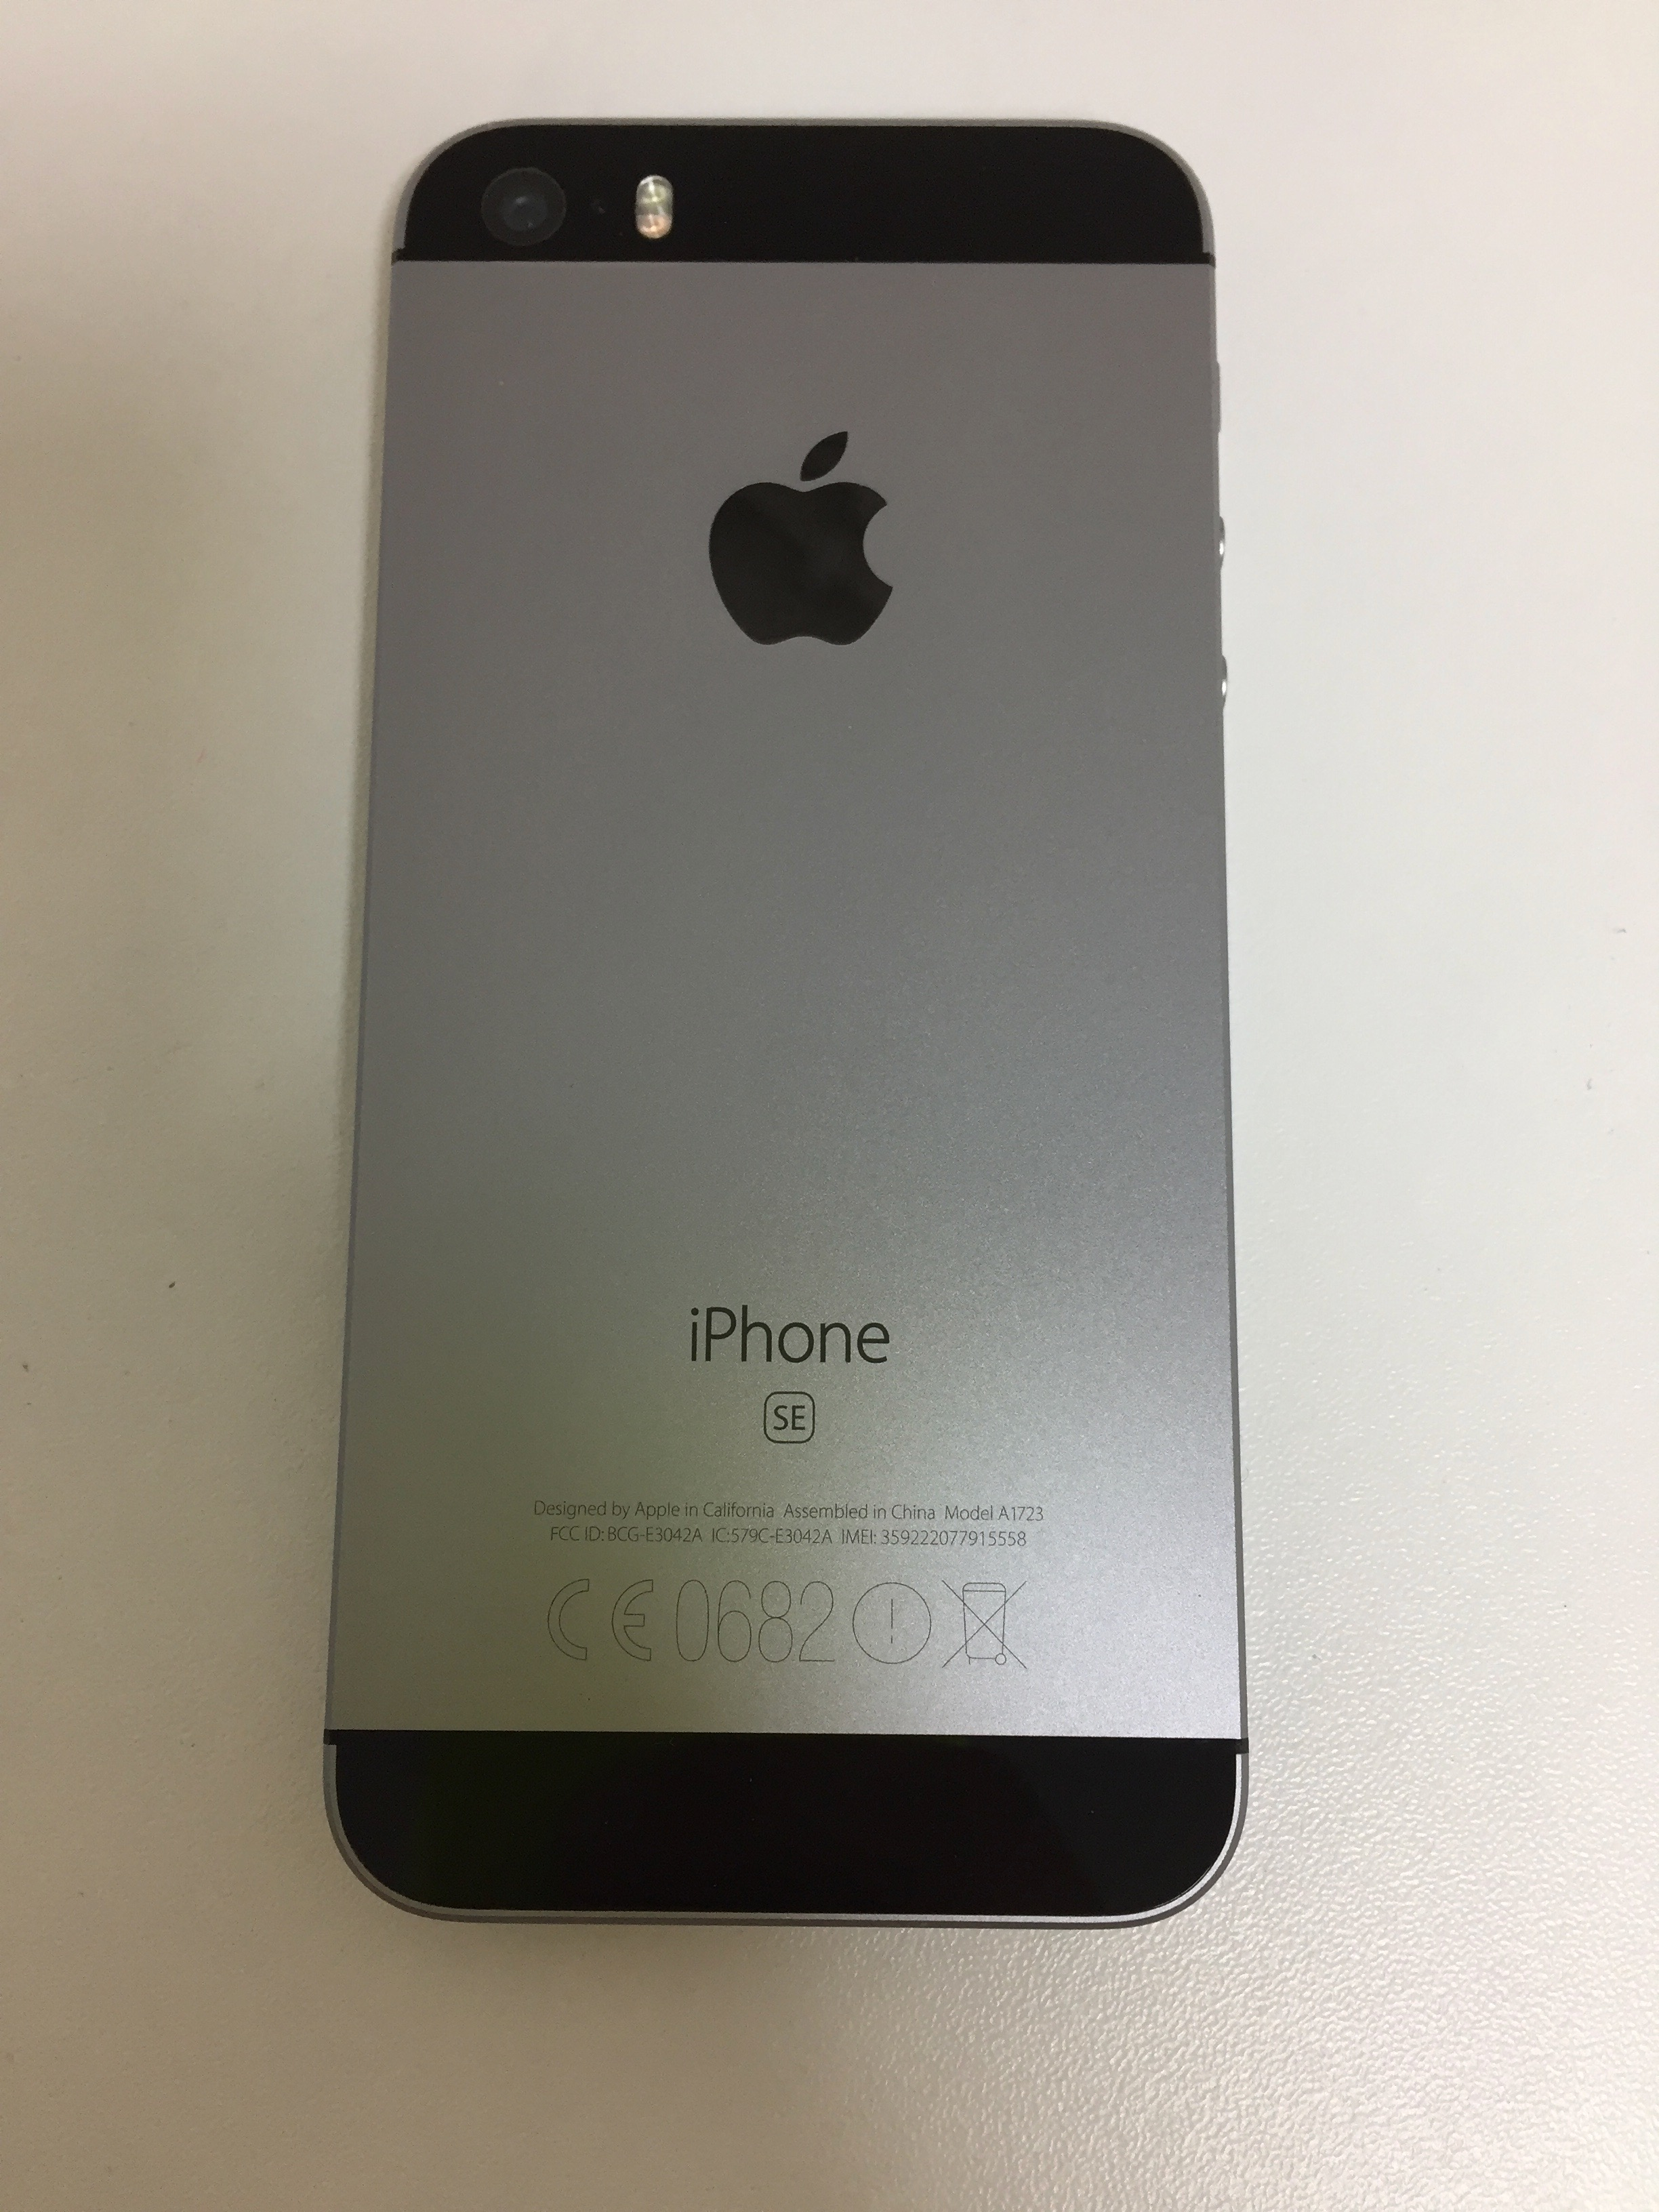 iPhone SE 16GB, 16 GB, Space Grau, Bild 2